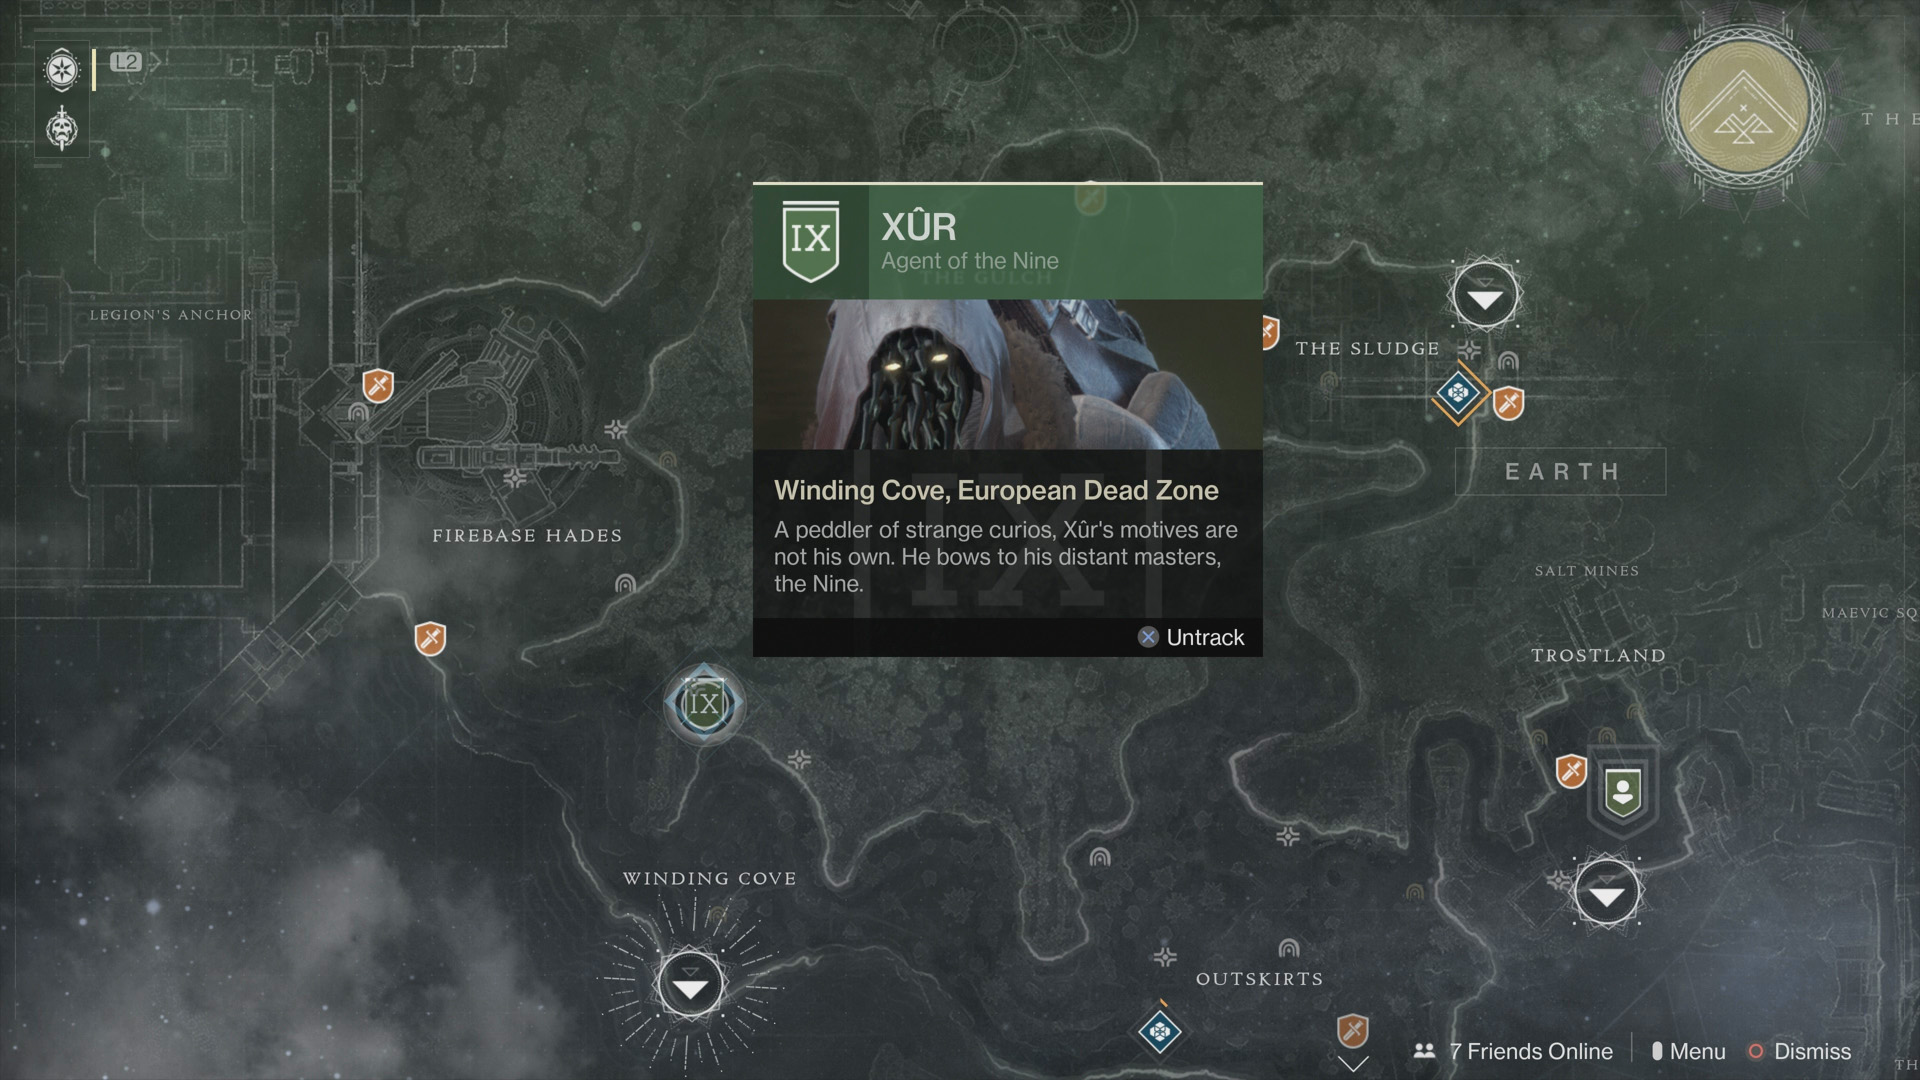 Destiny 2: Xur location and Inventory for Week 4